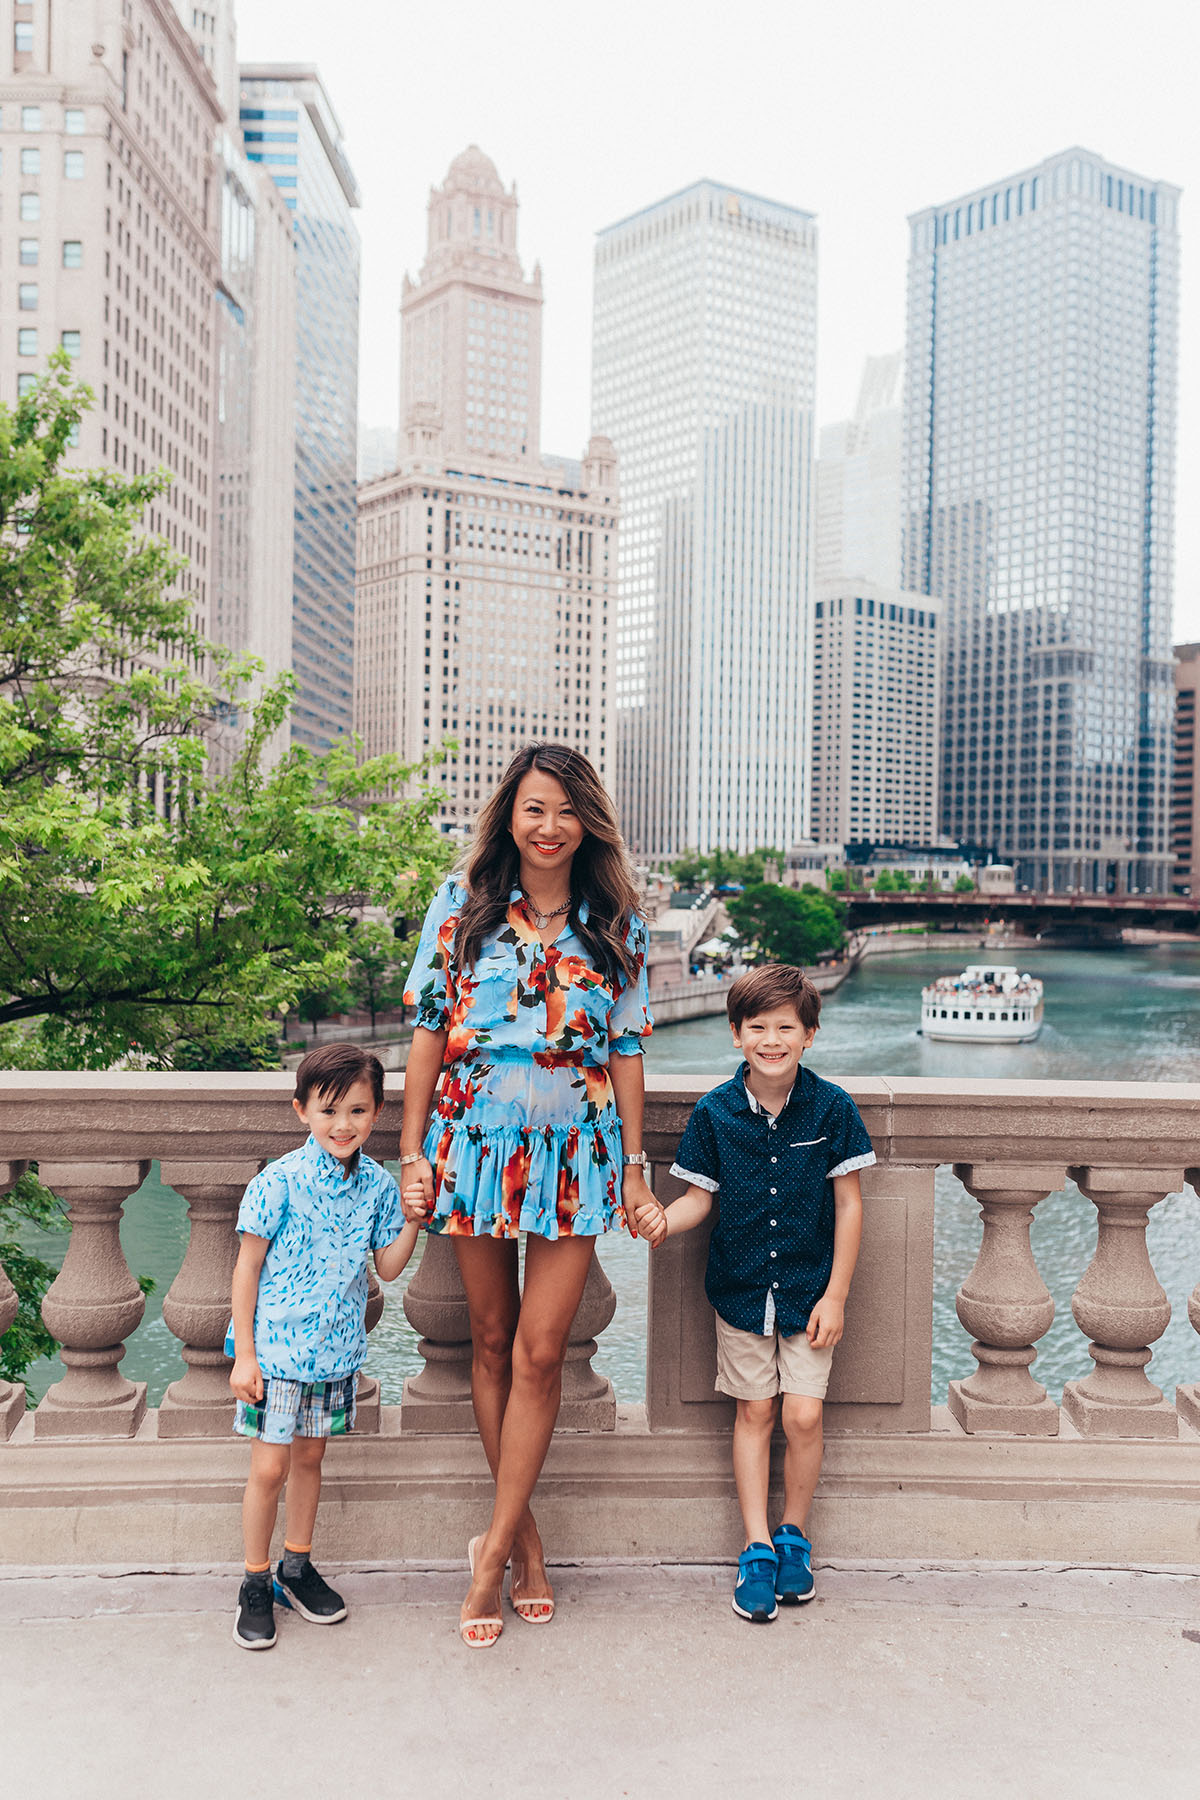 Jennifer Worman Chicago mom blogger, chicago mom blog, mommy blog, mother and sons photography ideas, mother and son photos, mother and son style